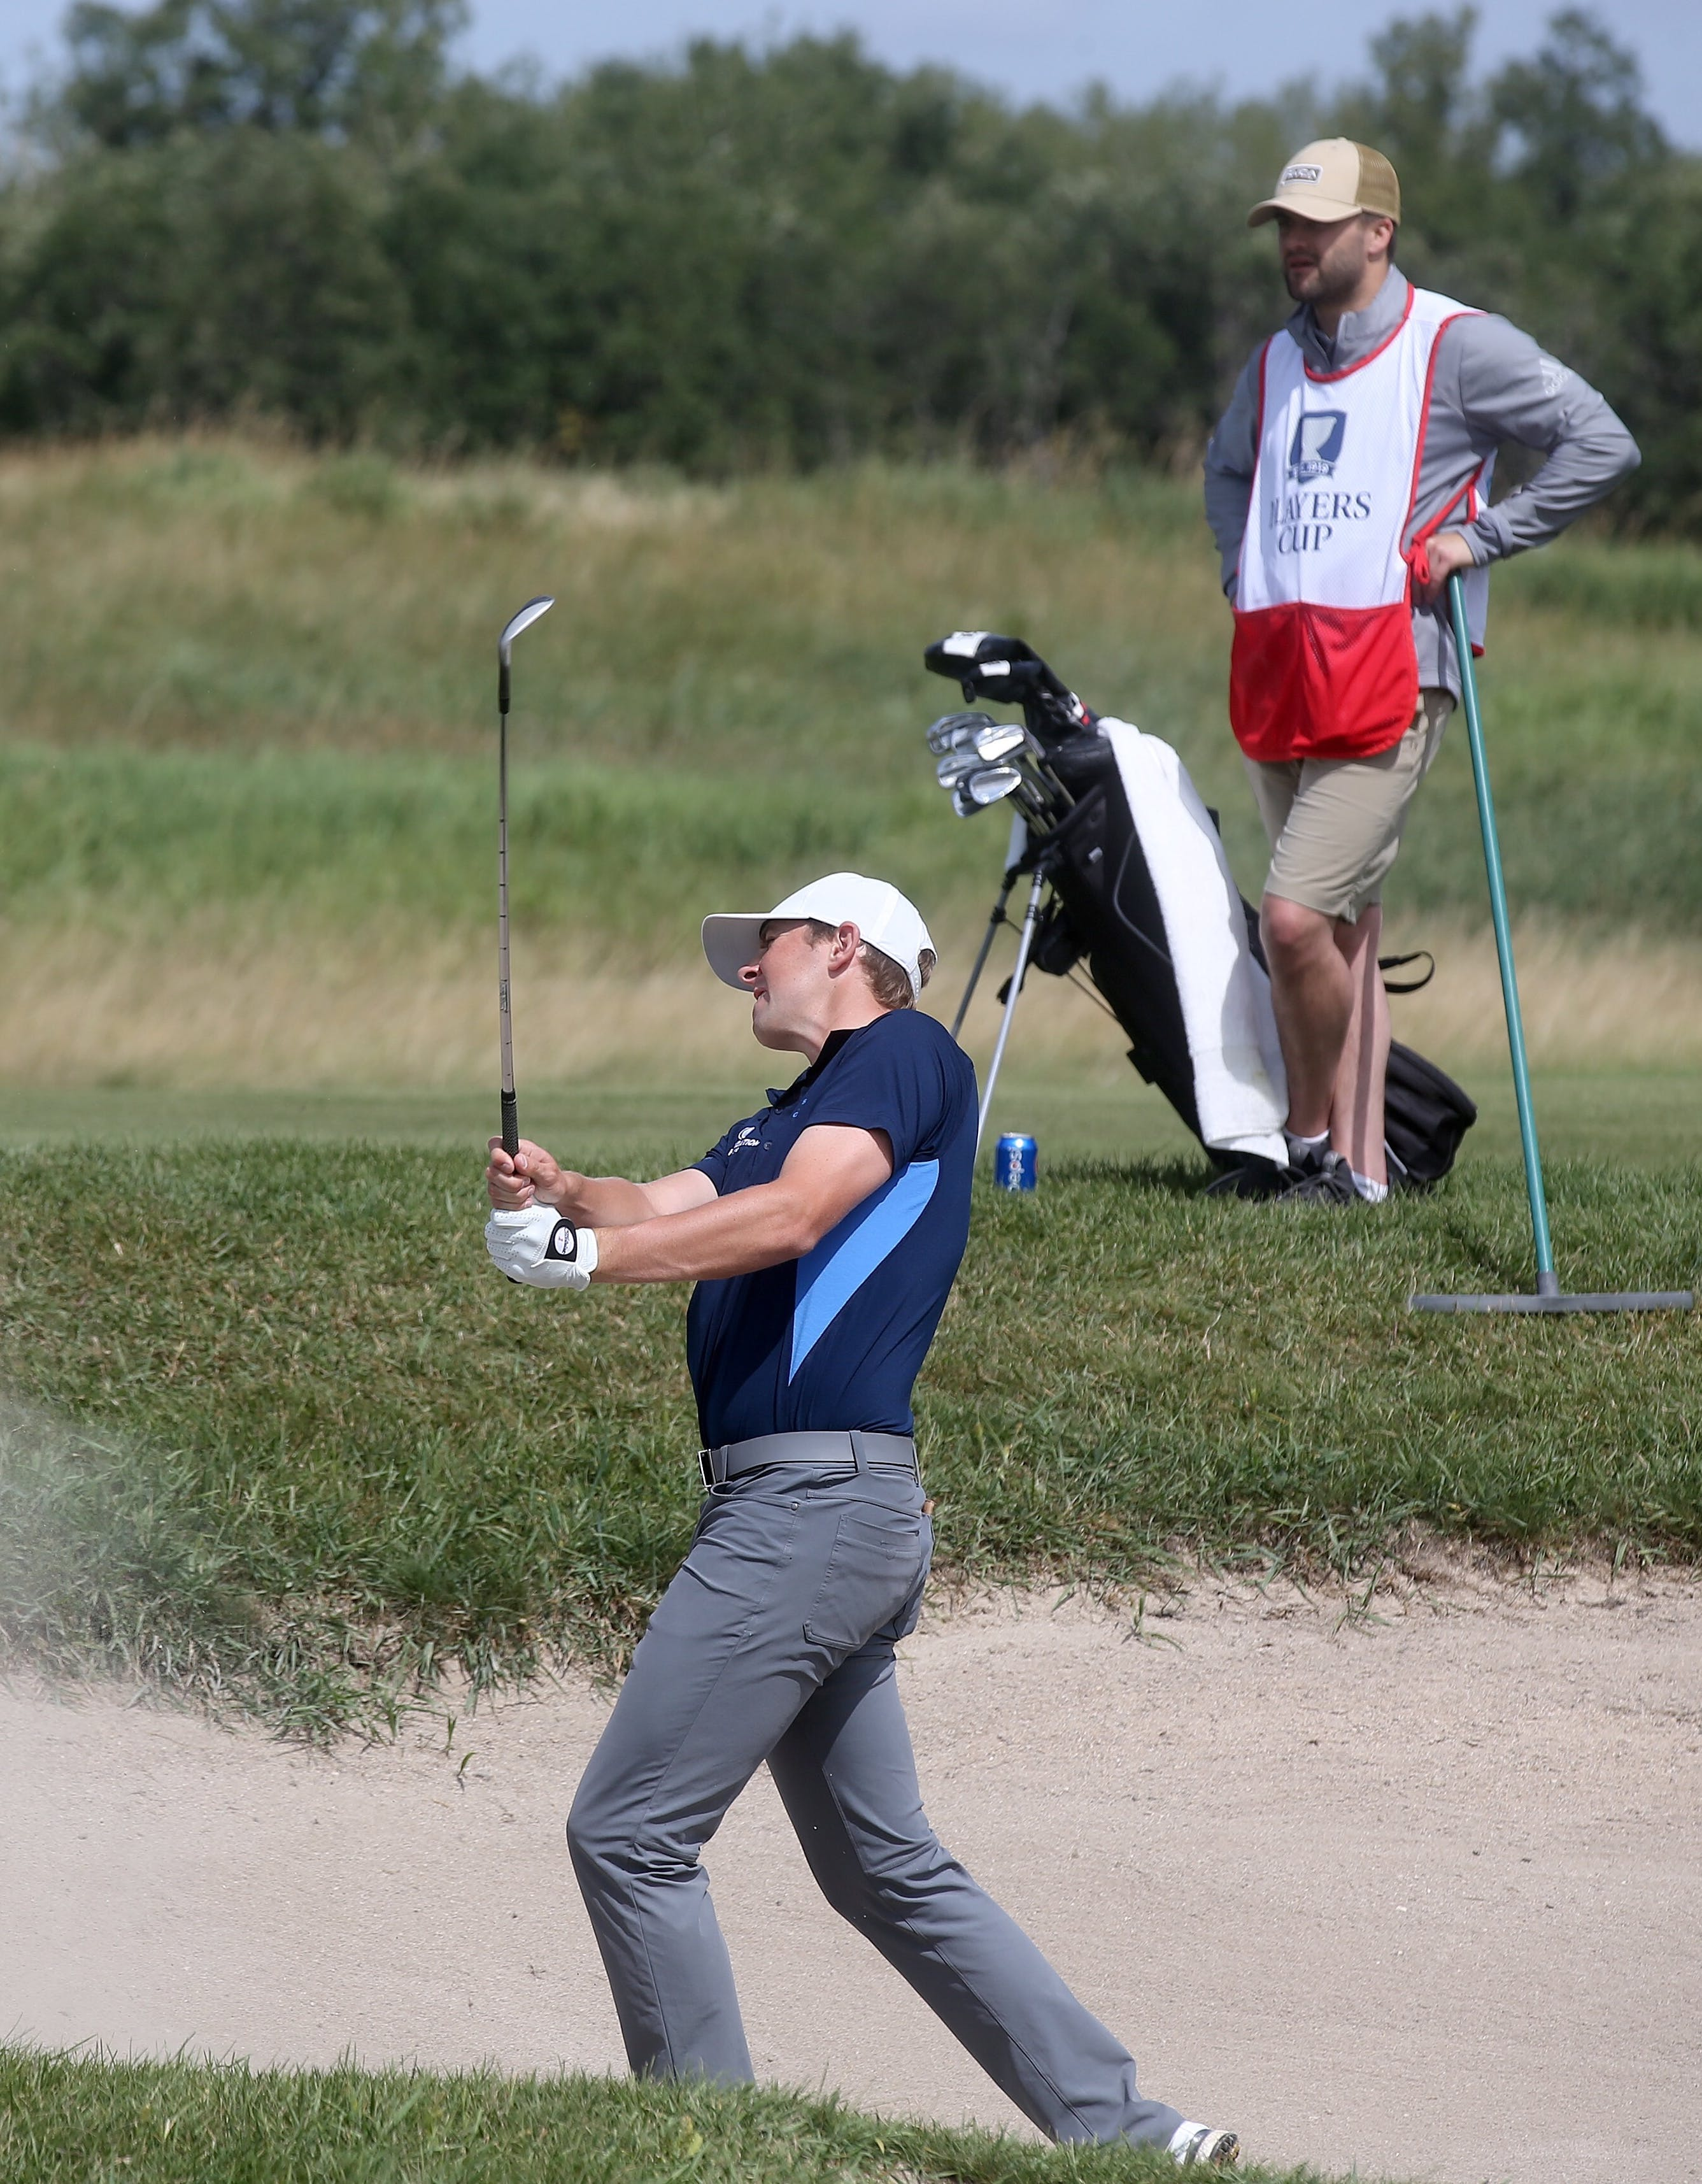 Myles Creighton hits out of a bunker while his caddy looks on during the second round of the Jacksonville Championship, Sept. 24 in Jacksonville, Fla.  PGA TOUR